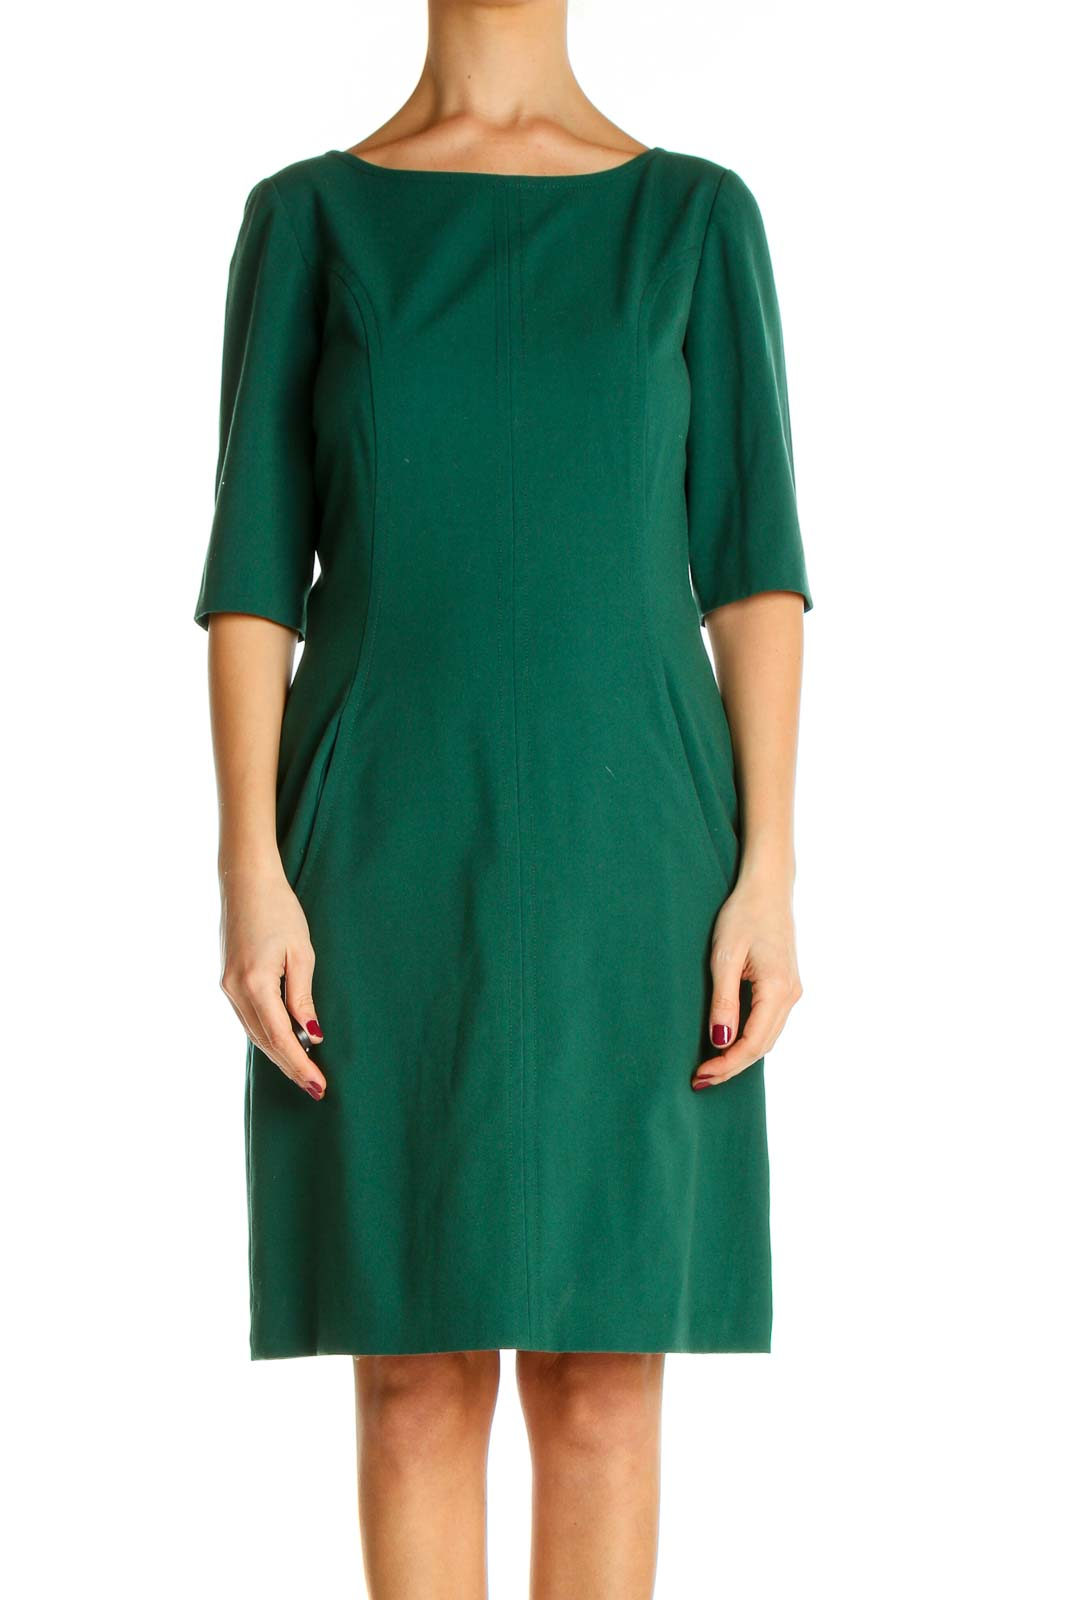 Green Solid Classic Fit & Flare Dress Front